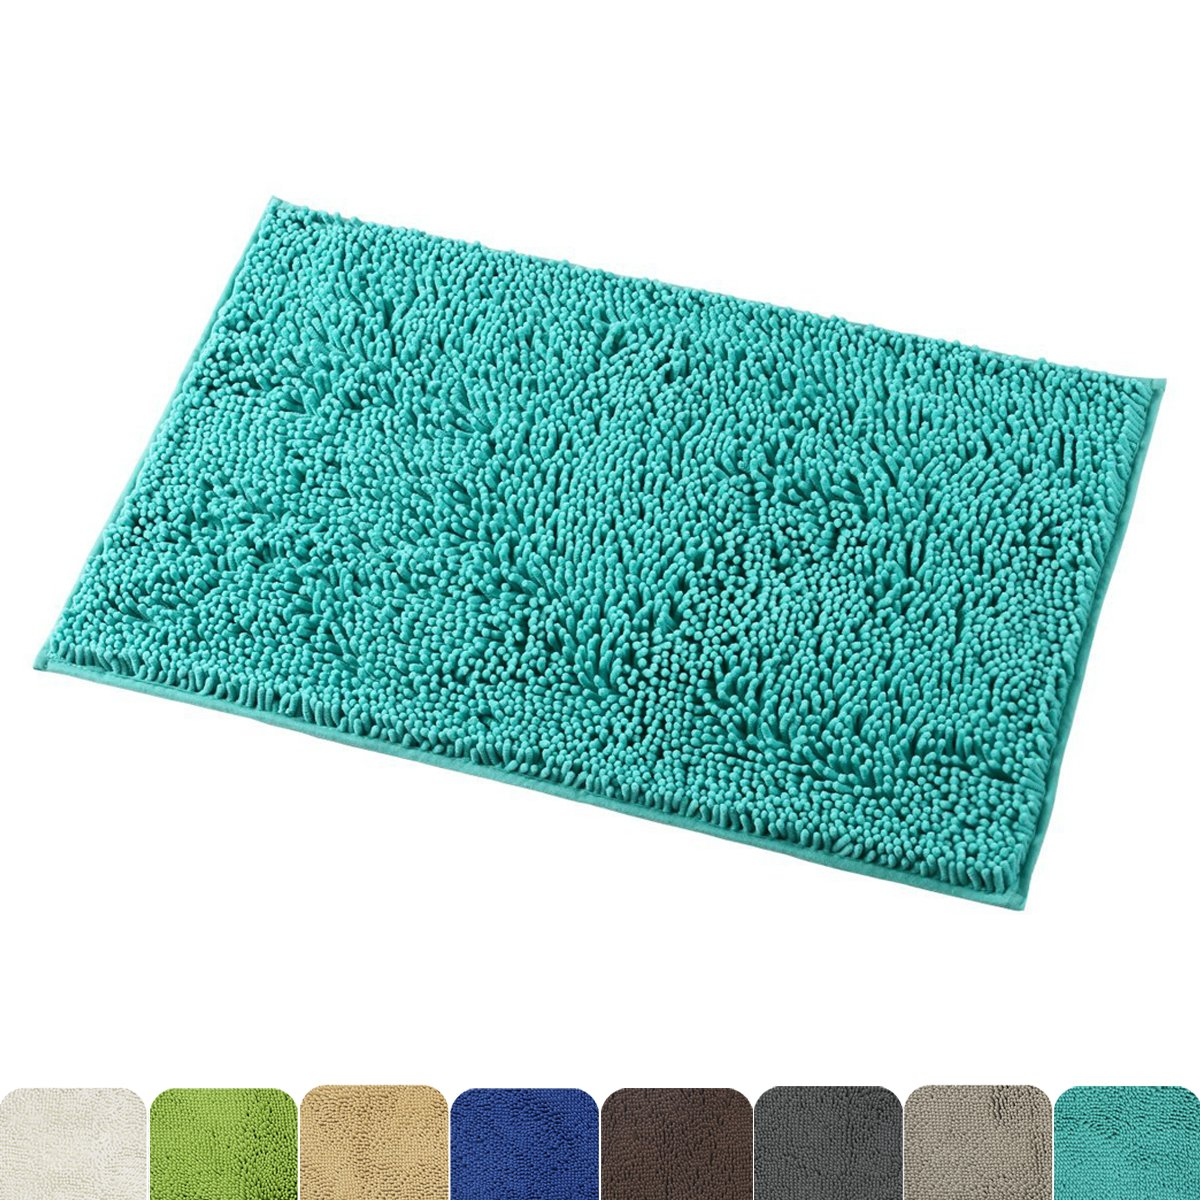 Mayshine Non Slip Bathroom Rug Shag Shower Mat Machine Washable Bath Mats  With Water